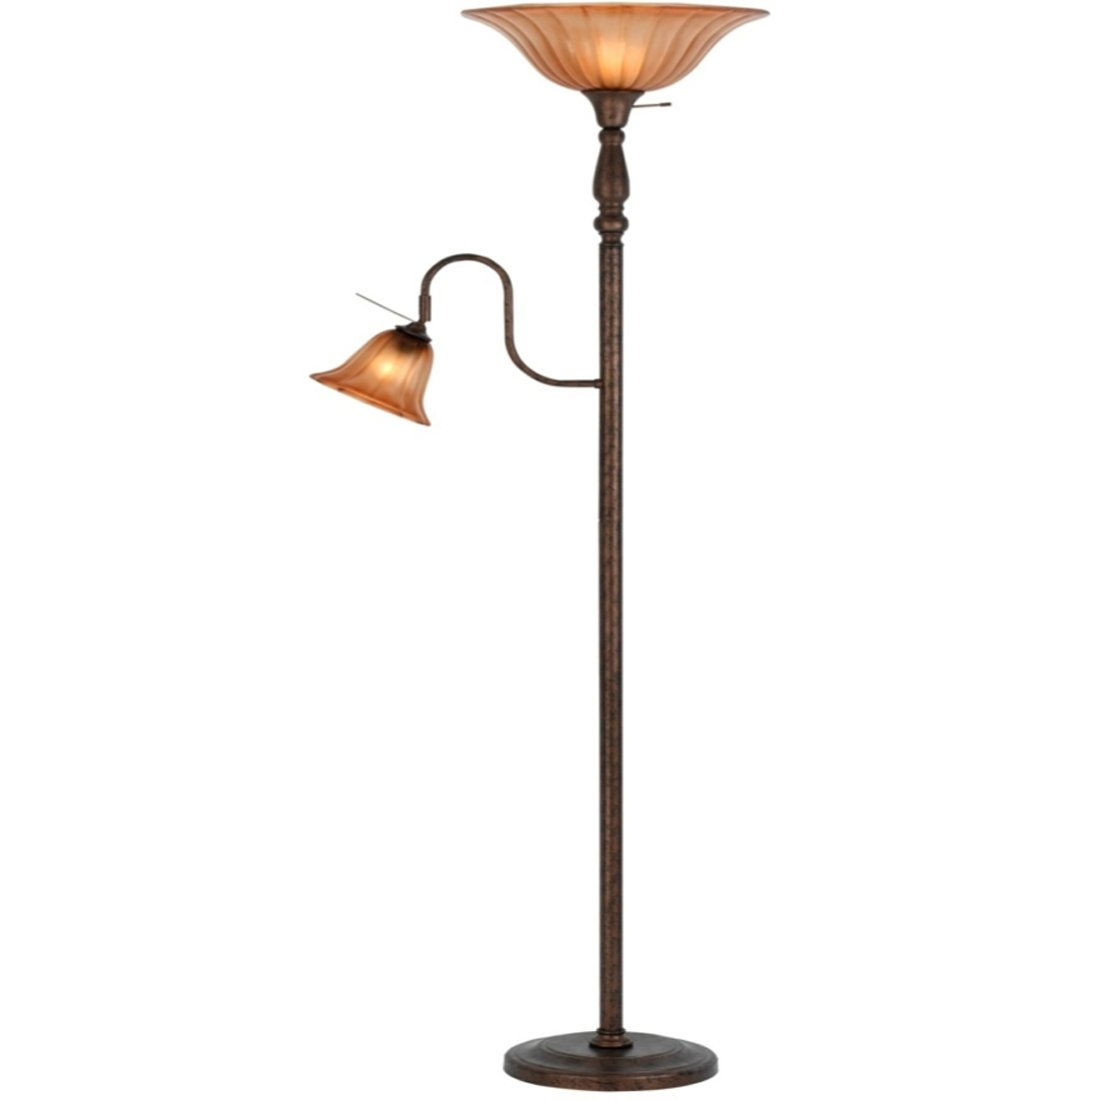 Bronze Metal Torchiere Uplight Floor Lamp with Reading Lamp